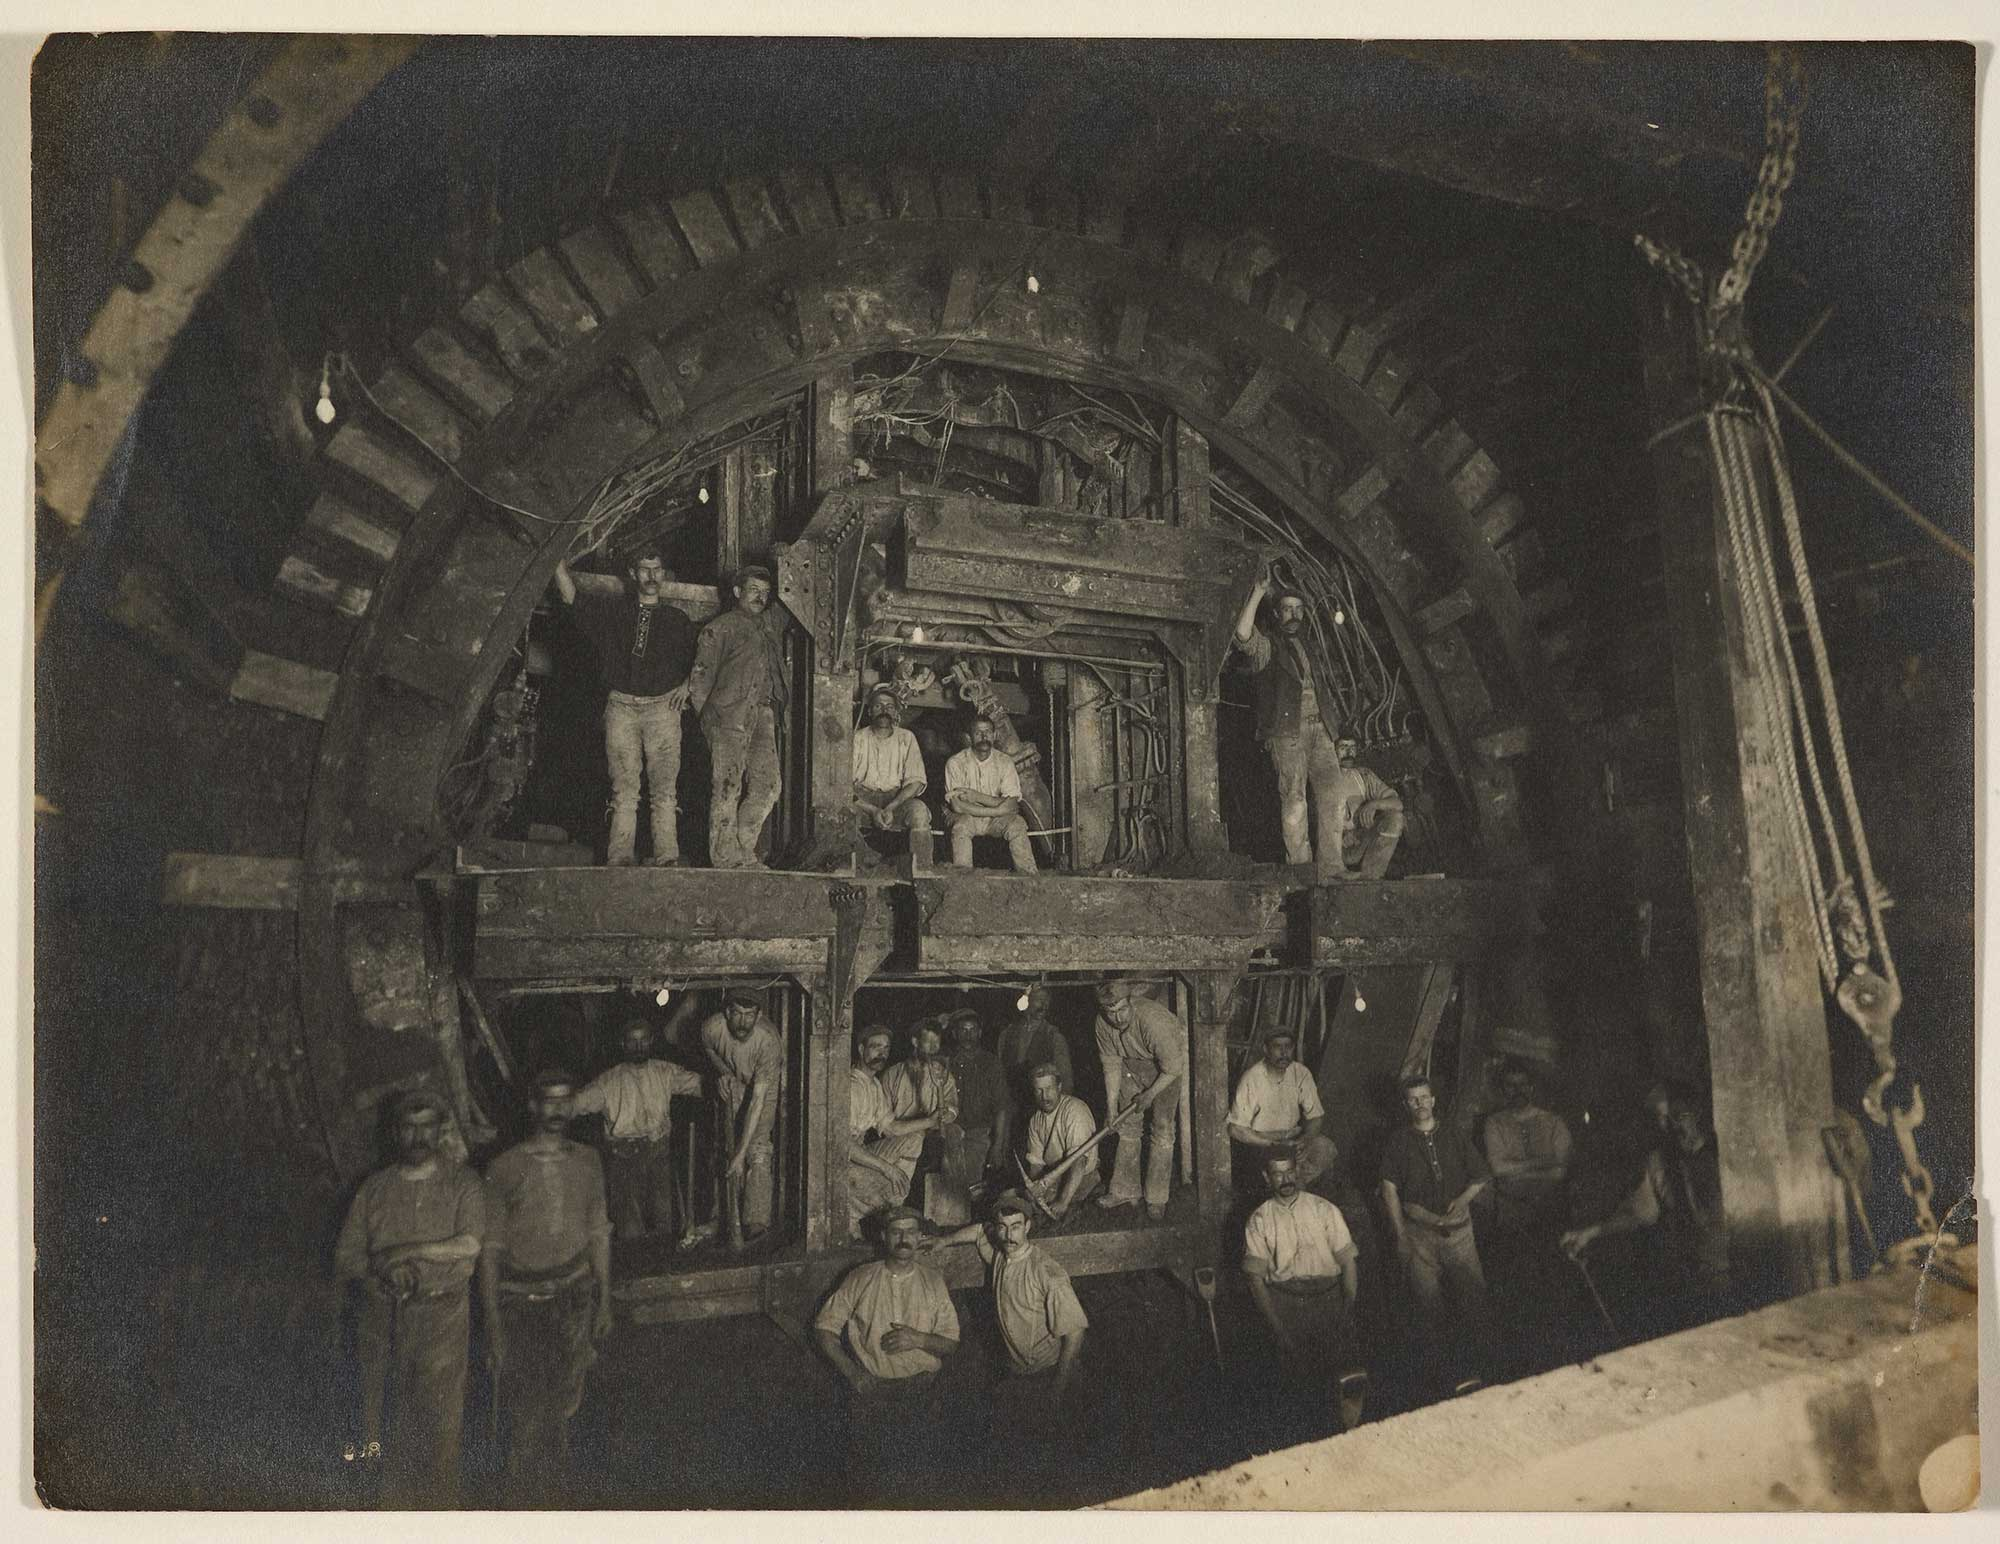 Photograph showing the construction of the London Underground's Central Line